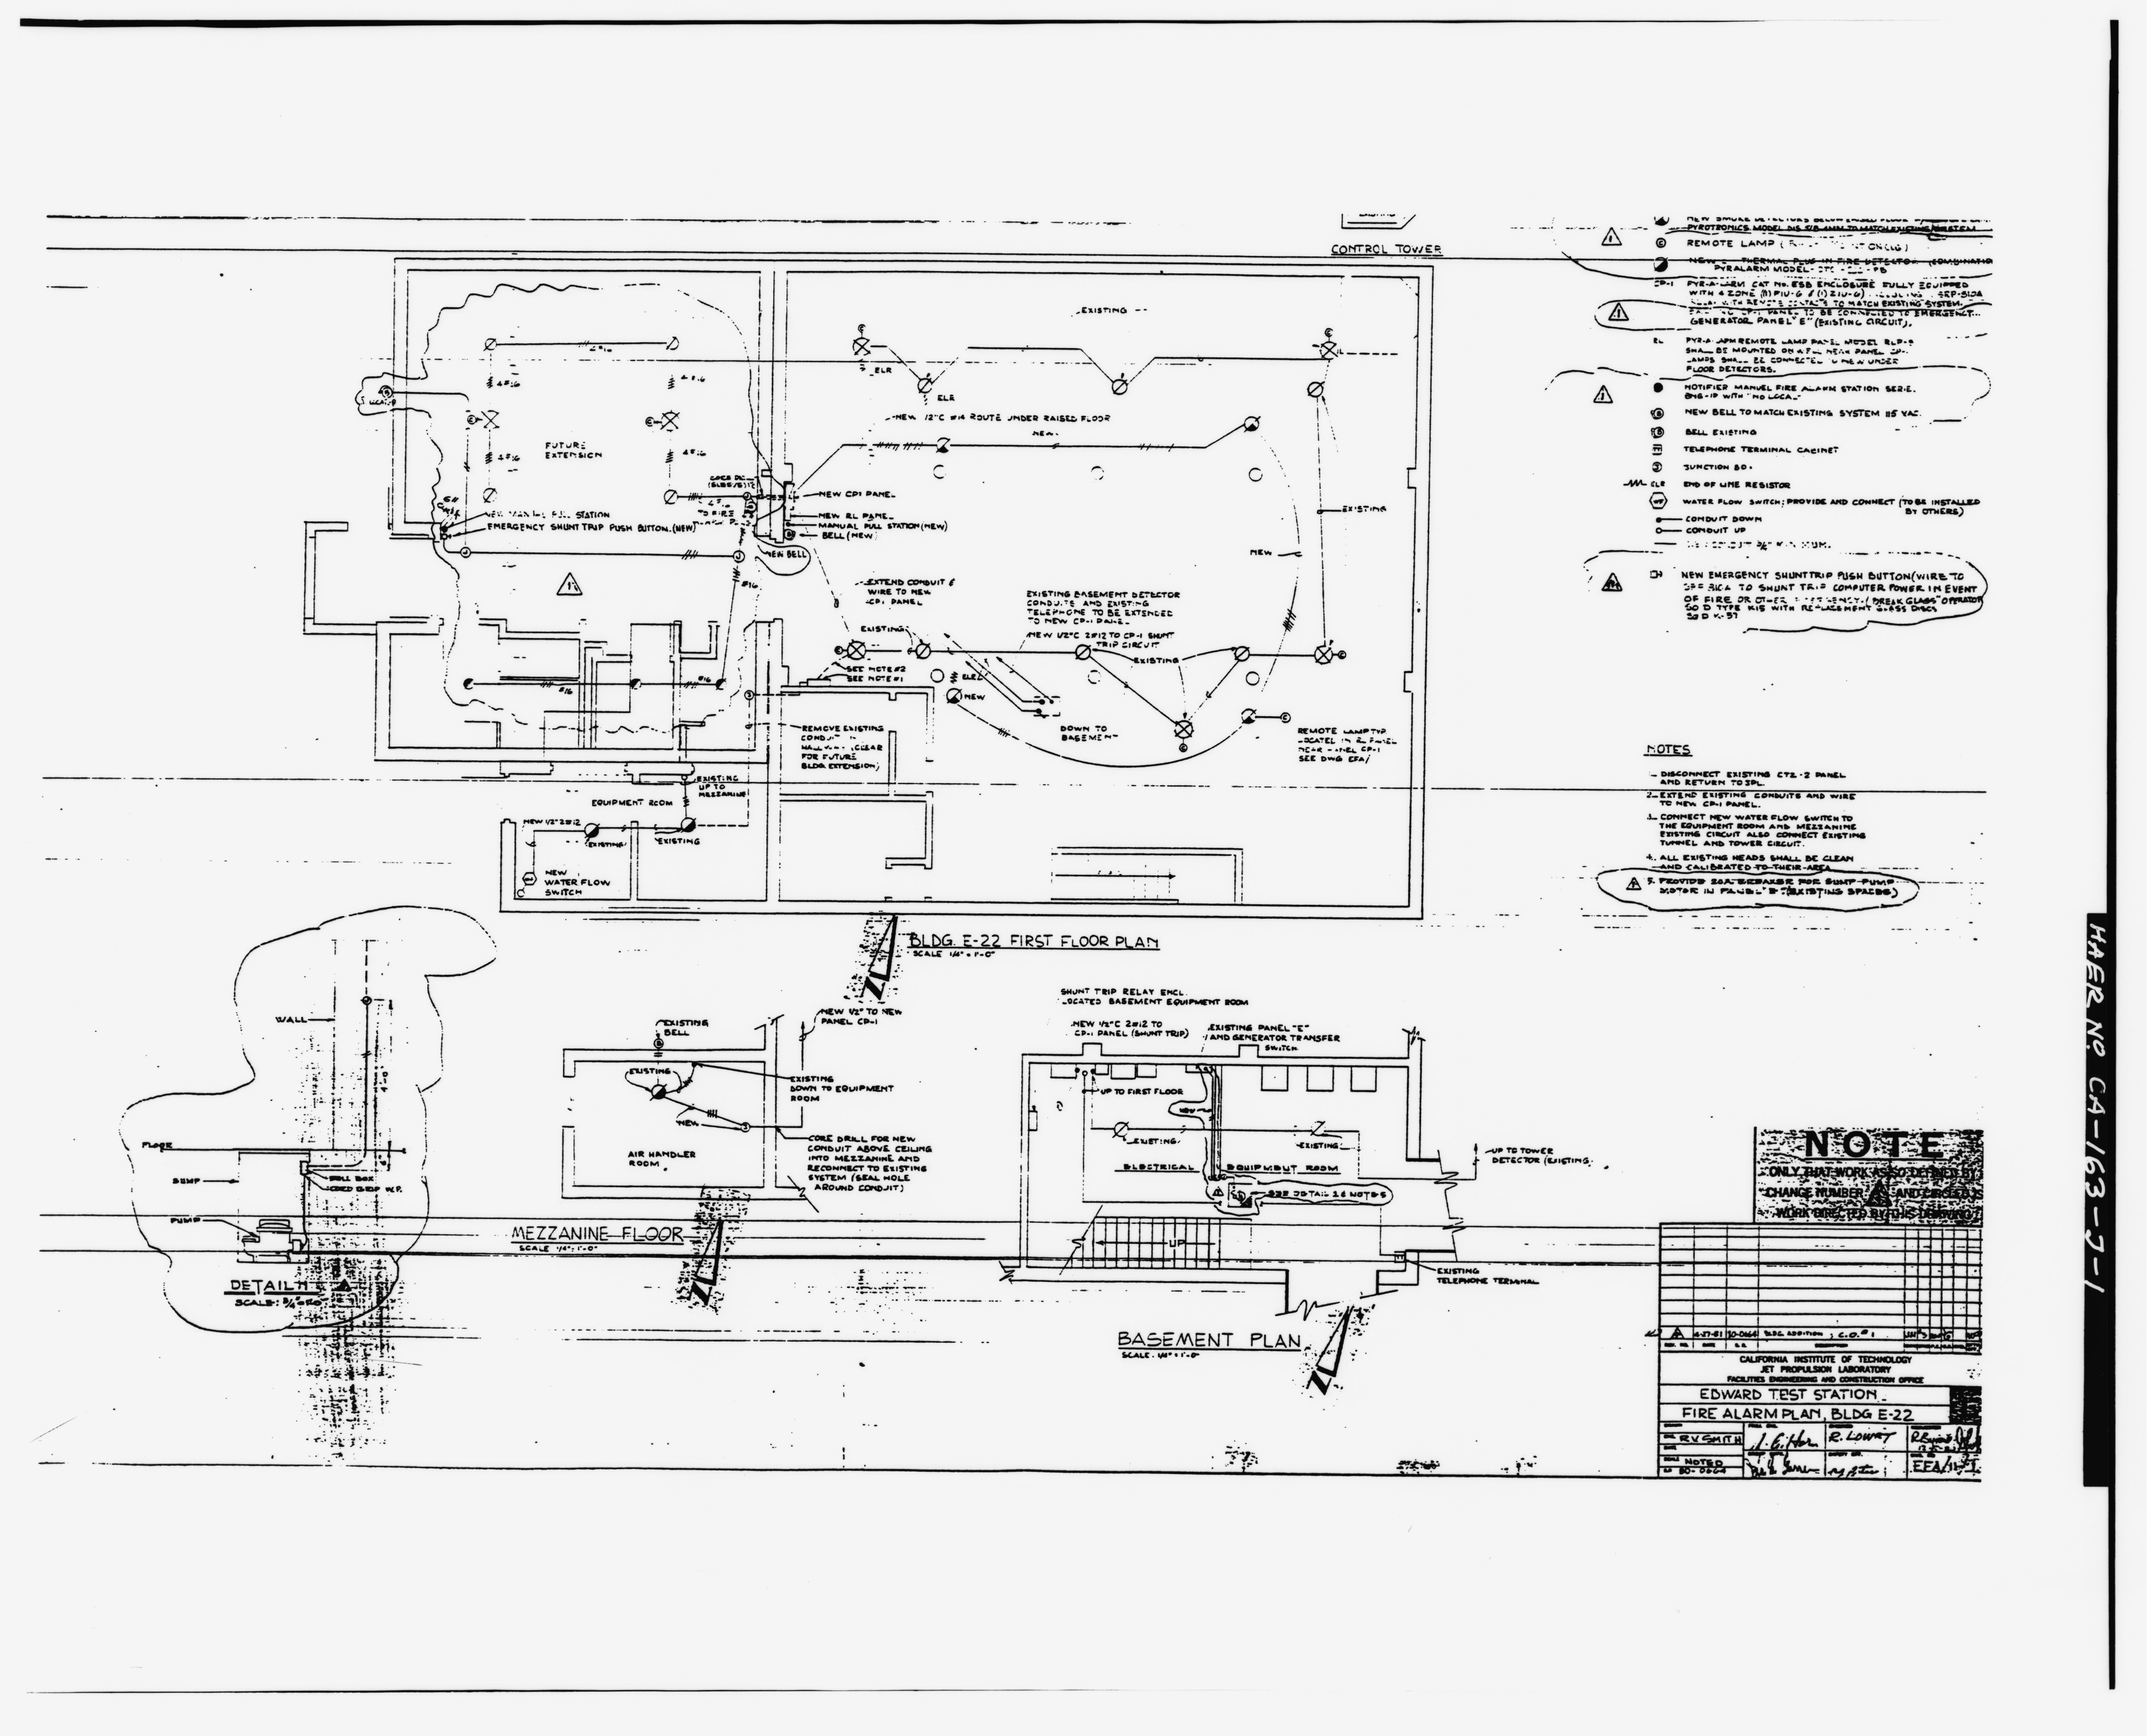 File Photographic Copy Of Fire Alarm Plan For Control And